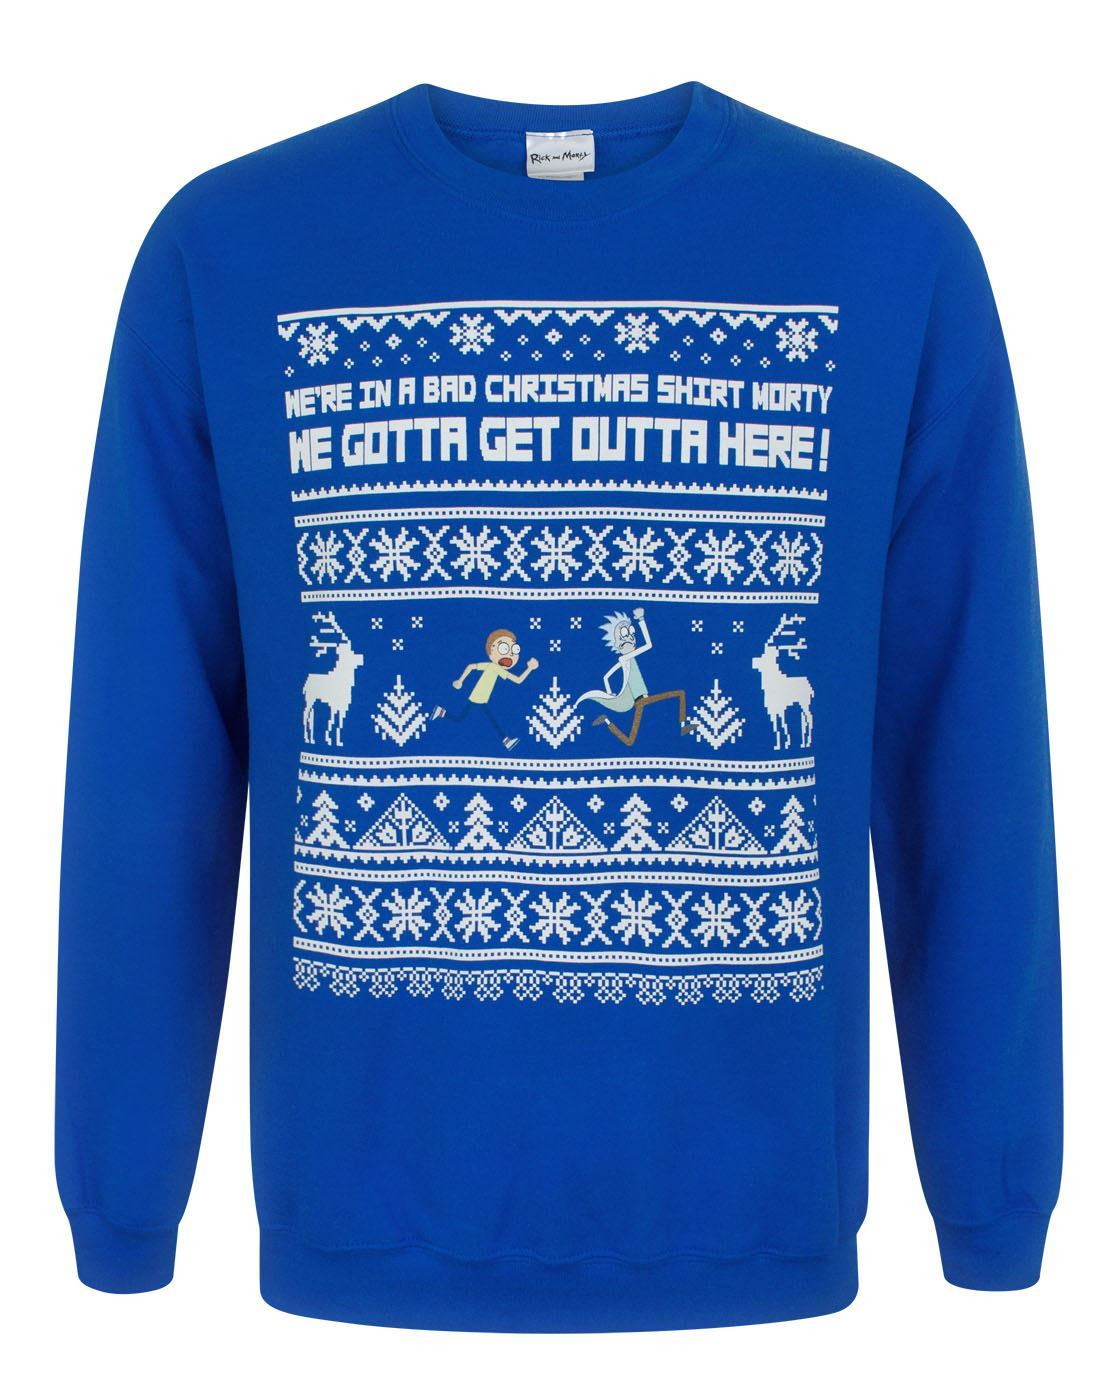 Rick And Morty Christmas Sweater.Rick And Morty We Gotta Get Outta Here Men S Christmas Sweatshirt